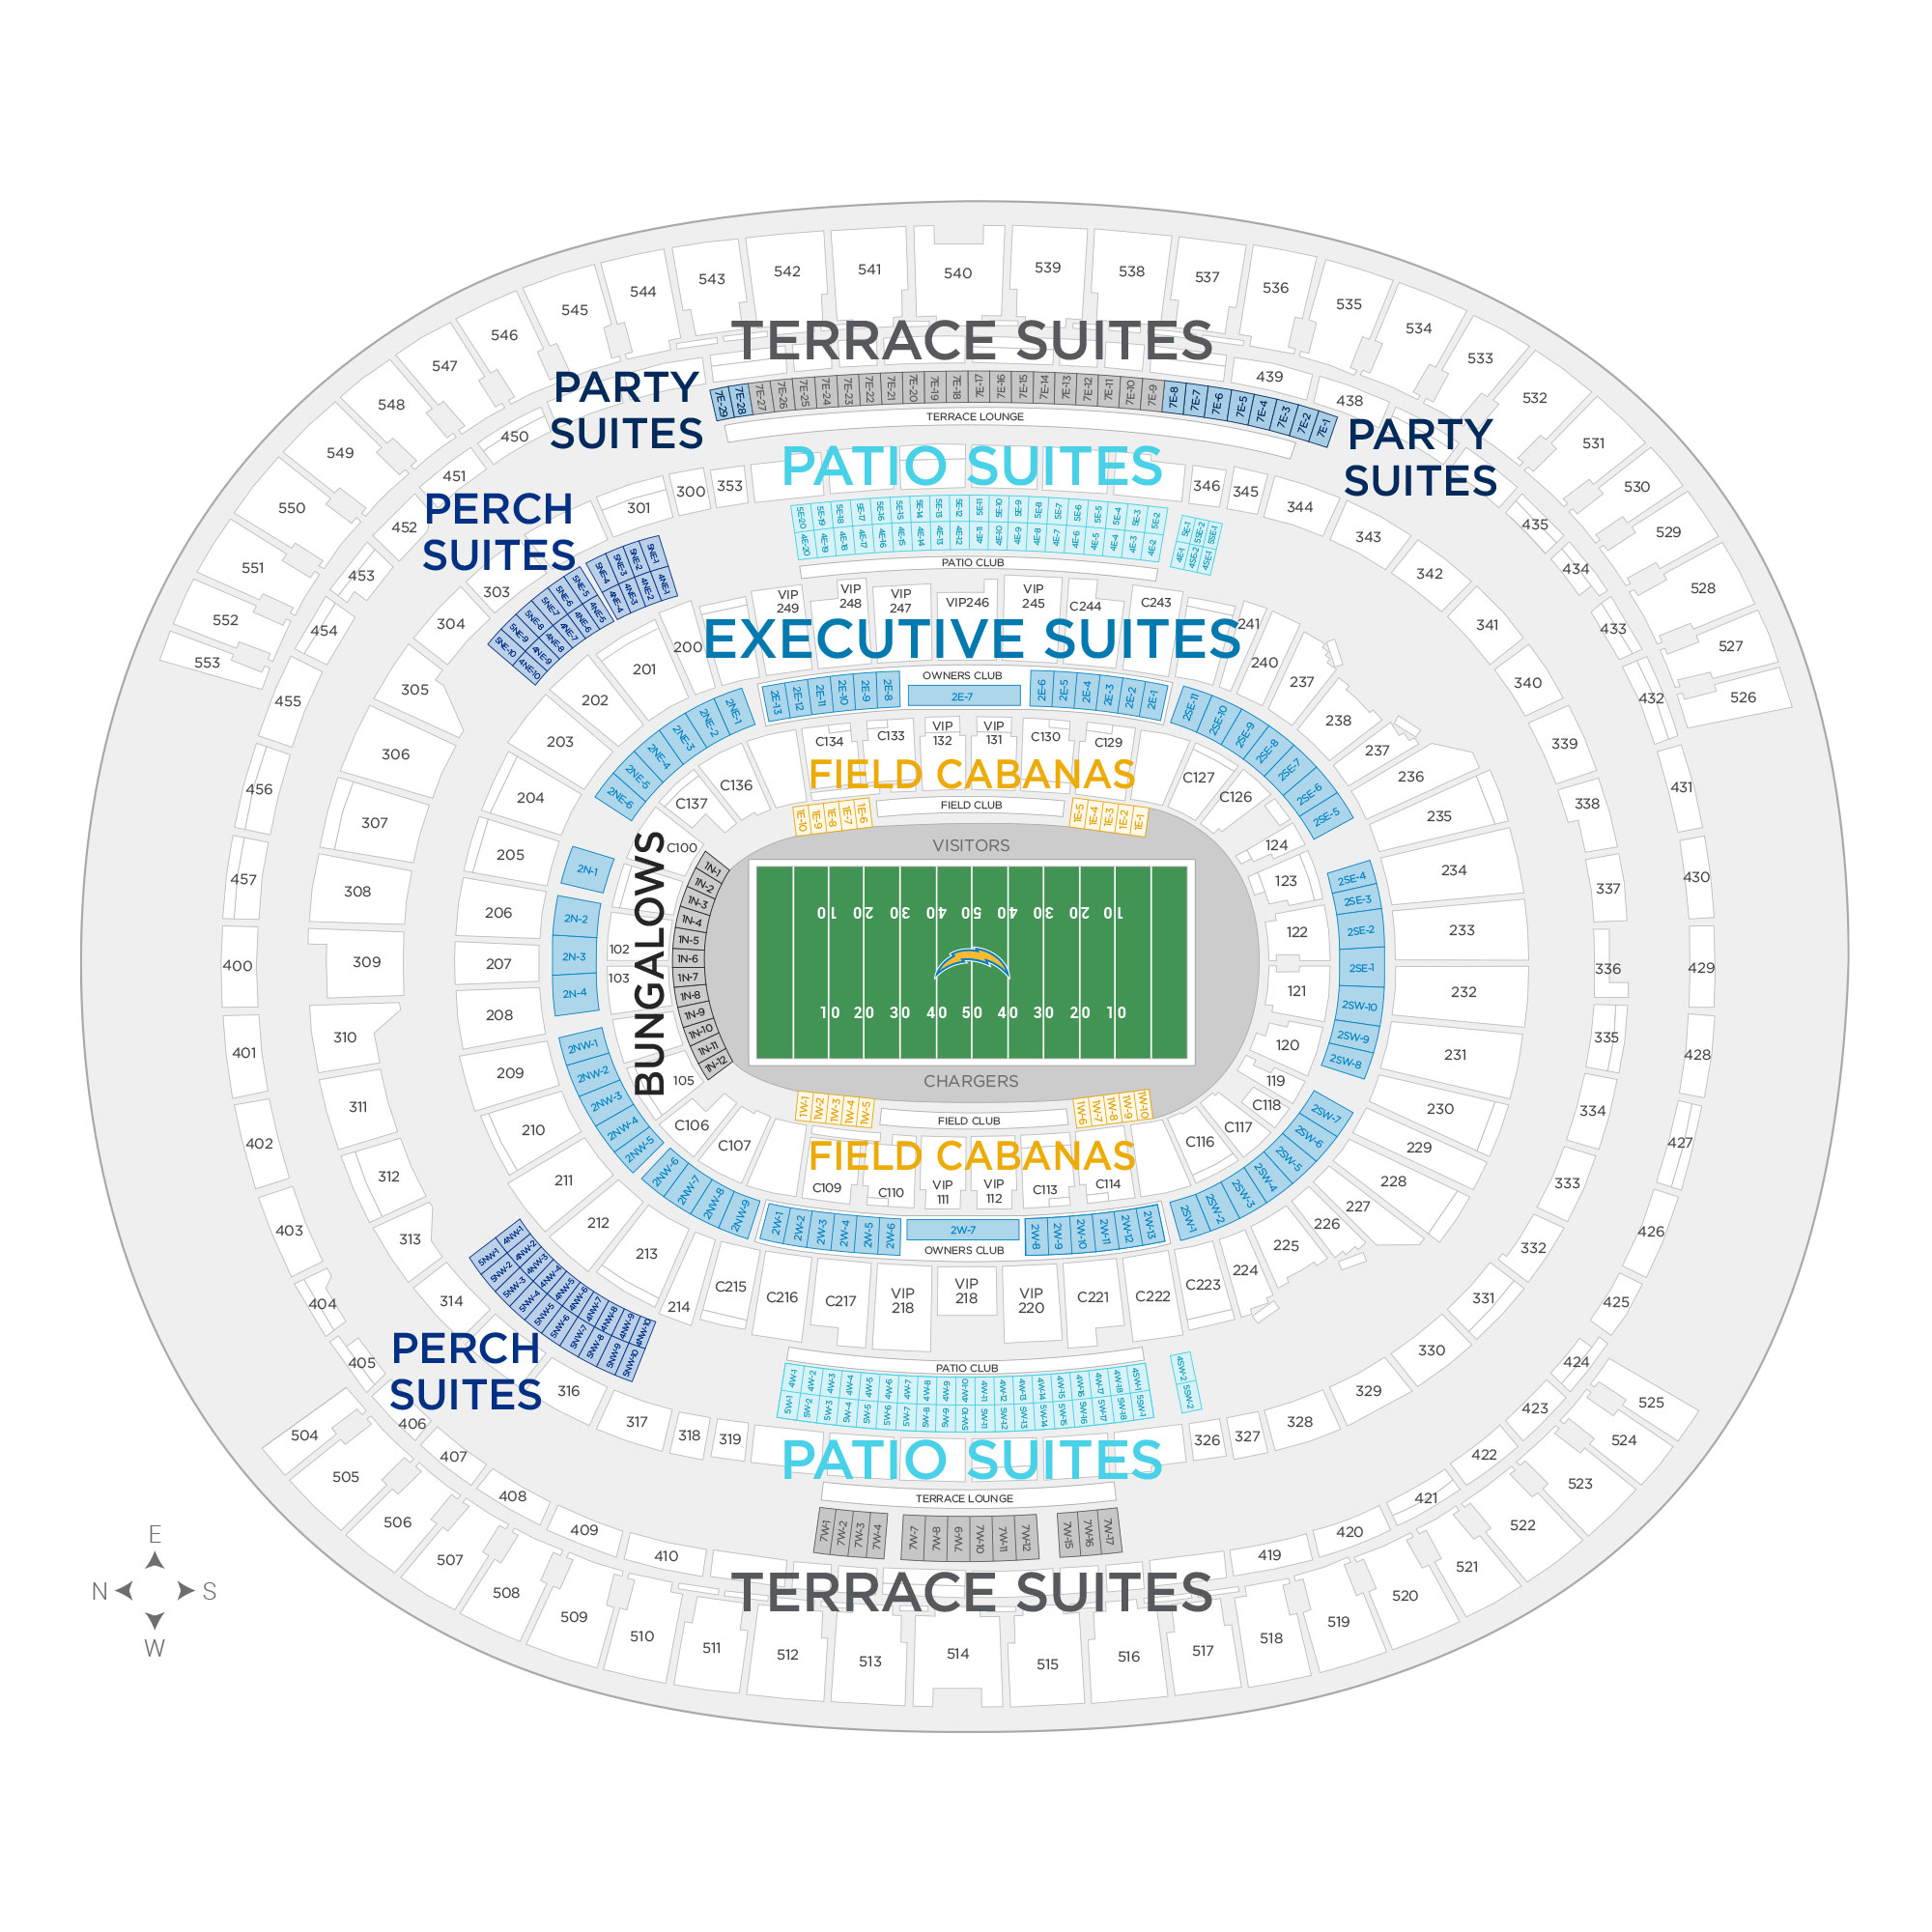 SoFi Stadium / Los Angeles Chargers Suite Map and Seating Chart